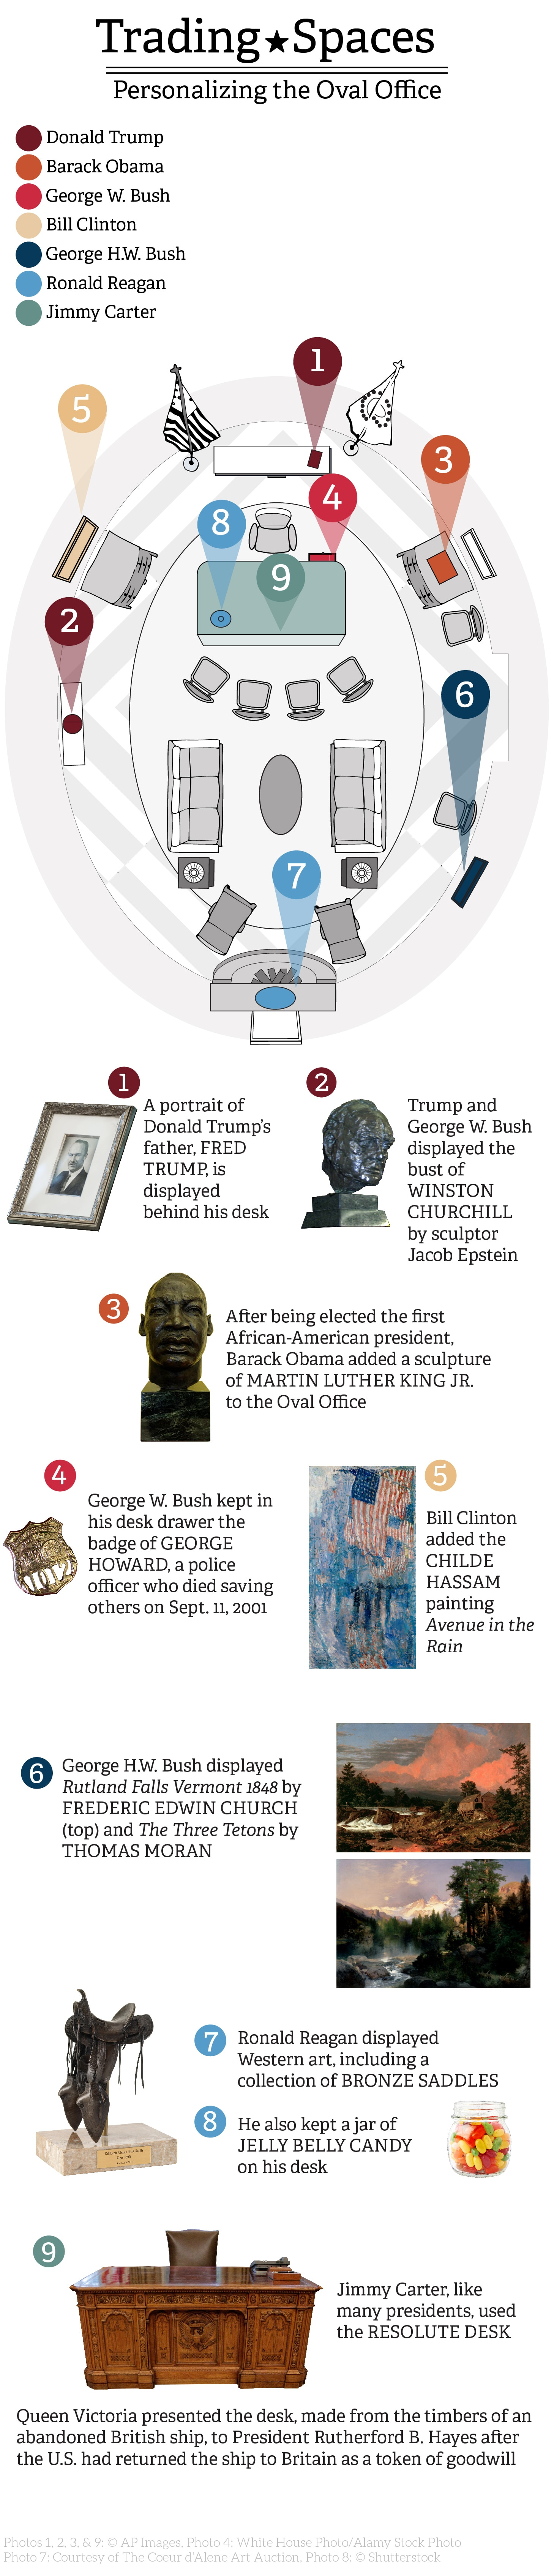 Infographic showing layout of Oval Office and illustrating items that past presidents have used to personalize it (State Dept./S. Gemeny Wilkinson)